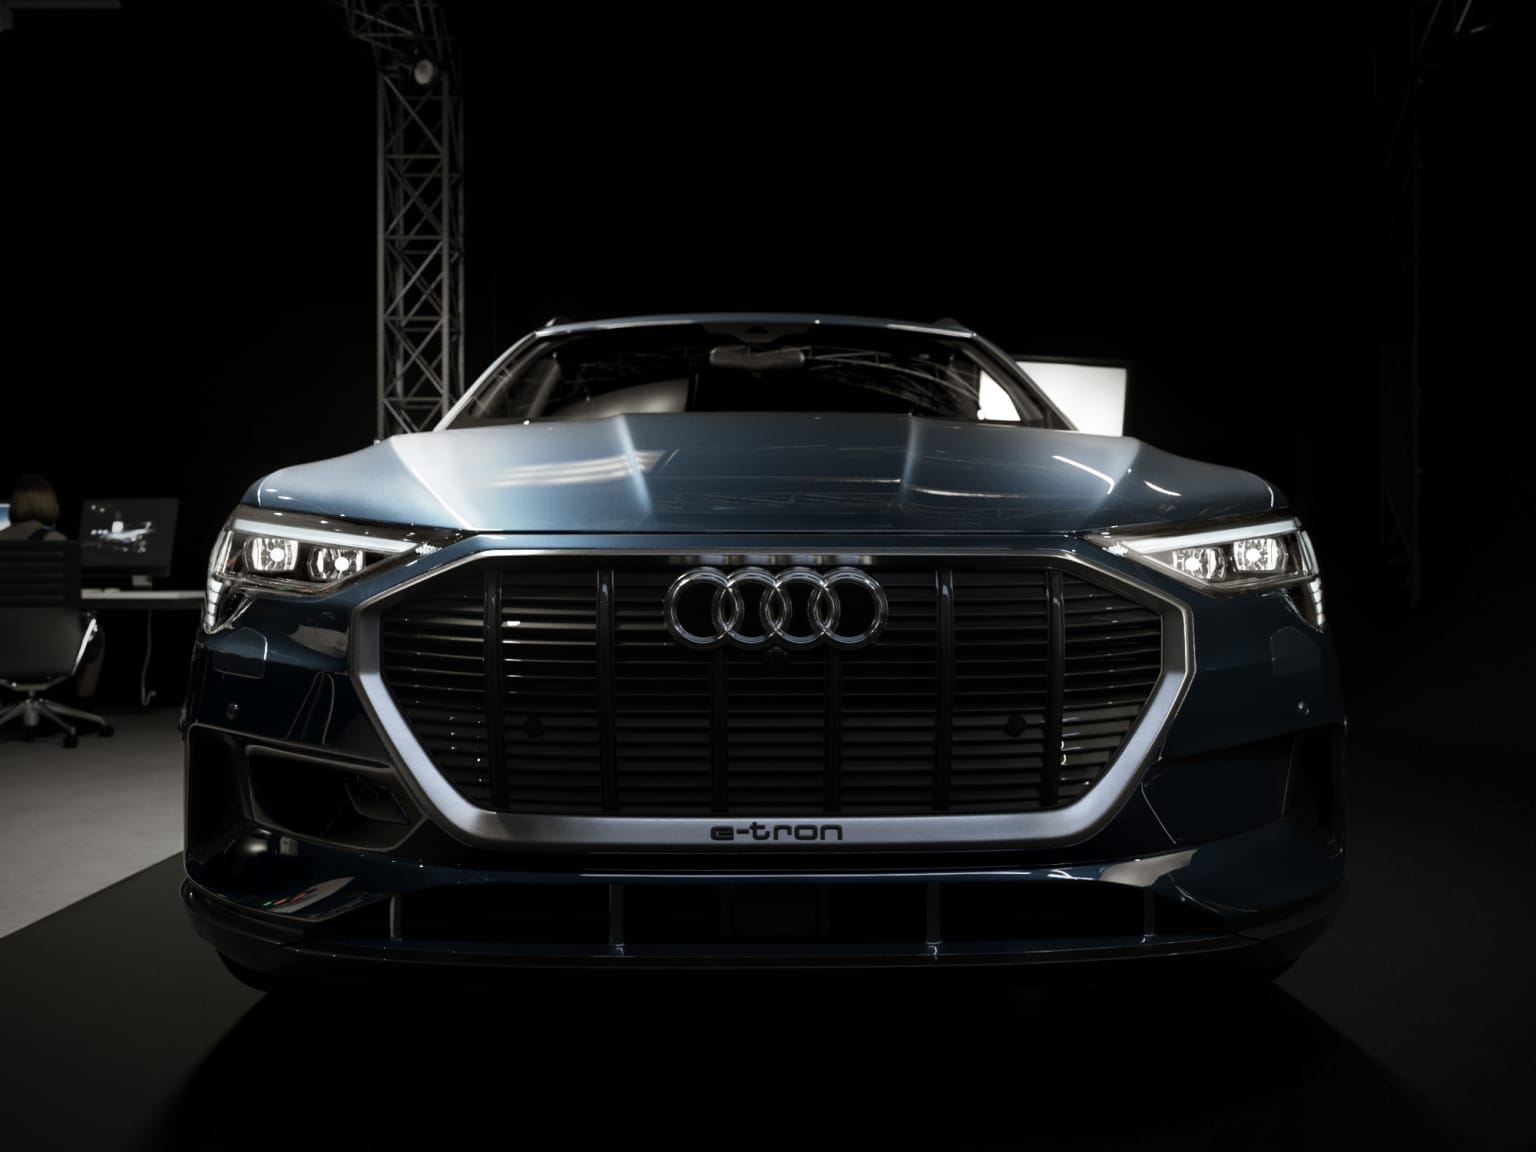 Behind the scenes - Audi e-tron